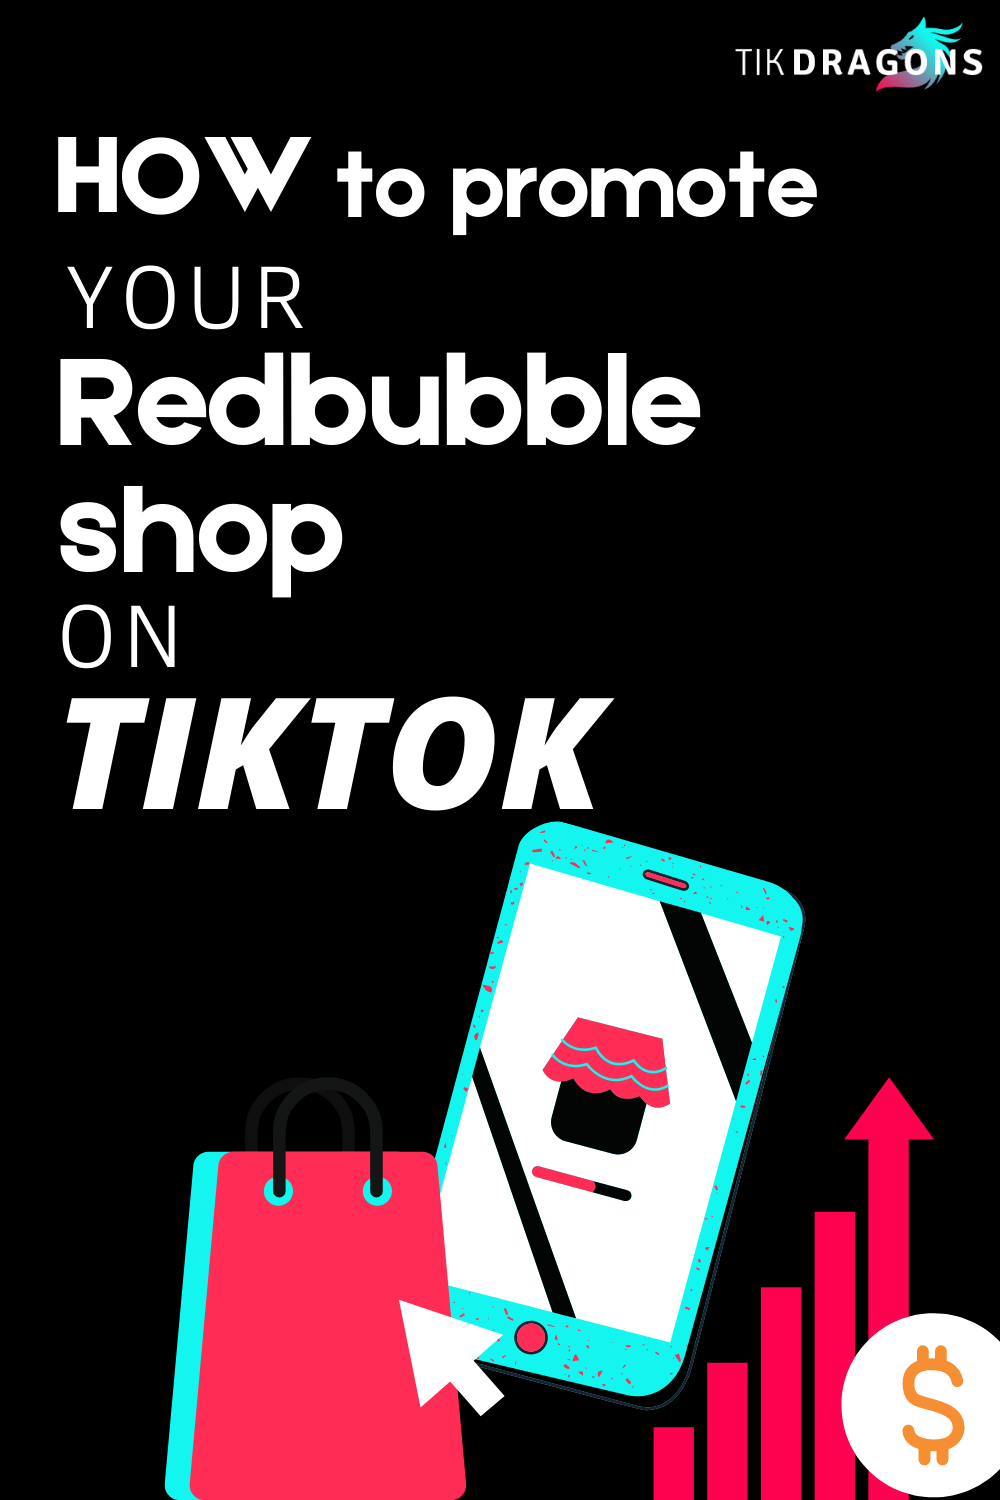 How To Promote Your Redbubble Shop On Tiktok Promotion Shopping Redbubble